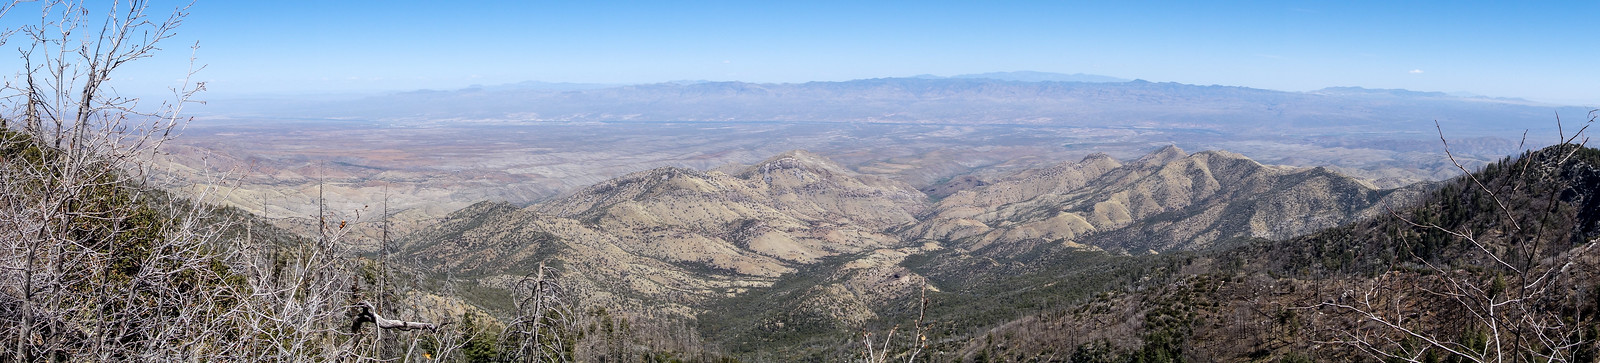 1404 Looking down into the Peck Basin Area from the Butterfly Trail